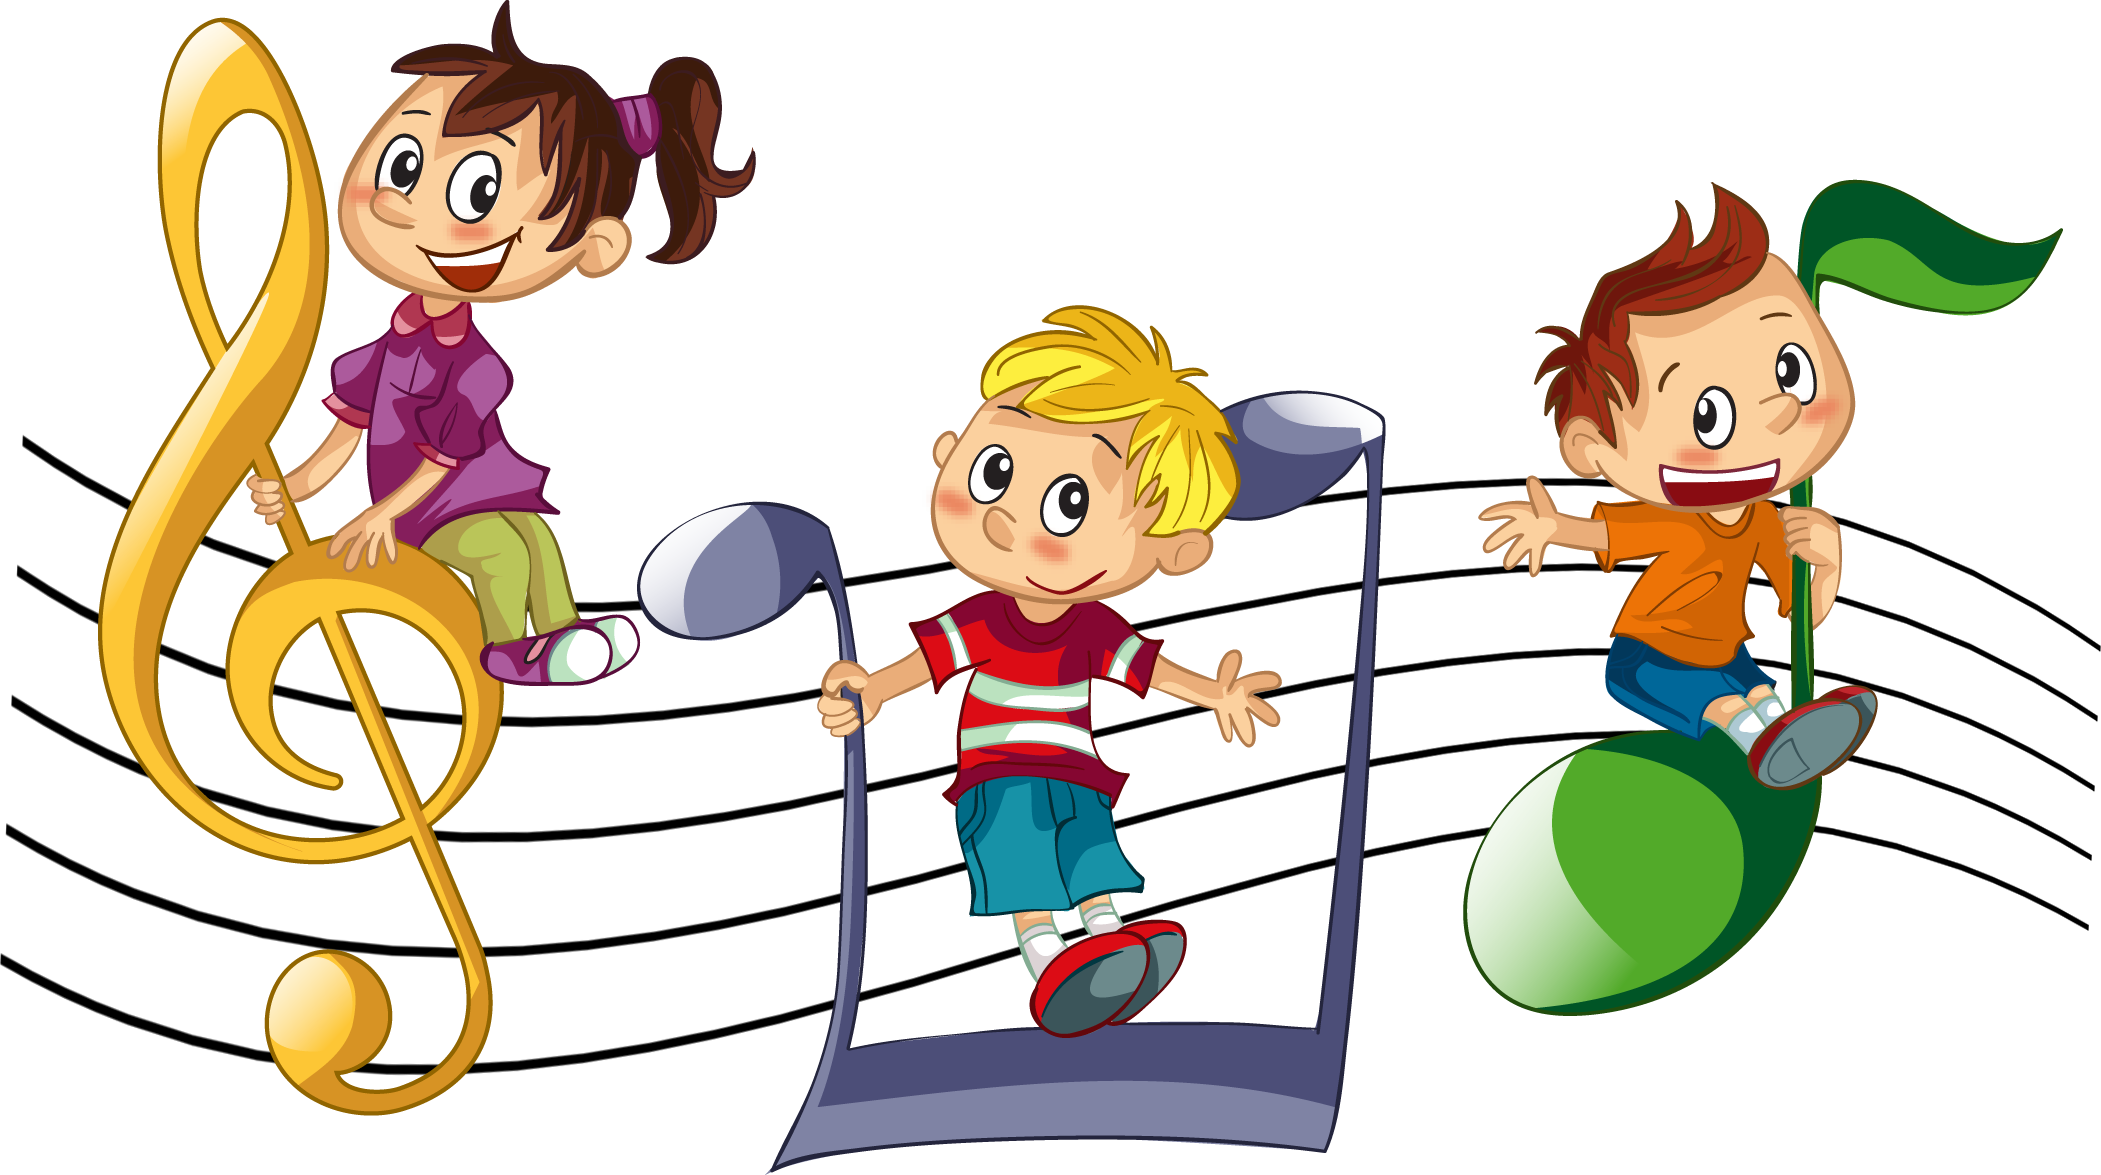 Musical clipart music education. December daily bible reading